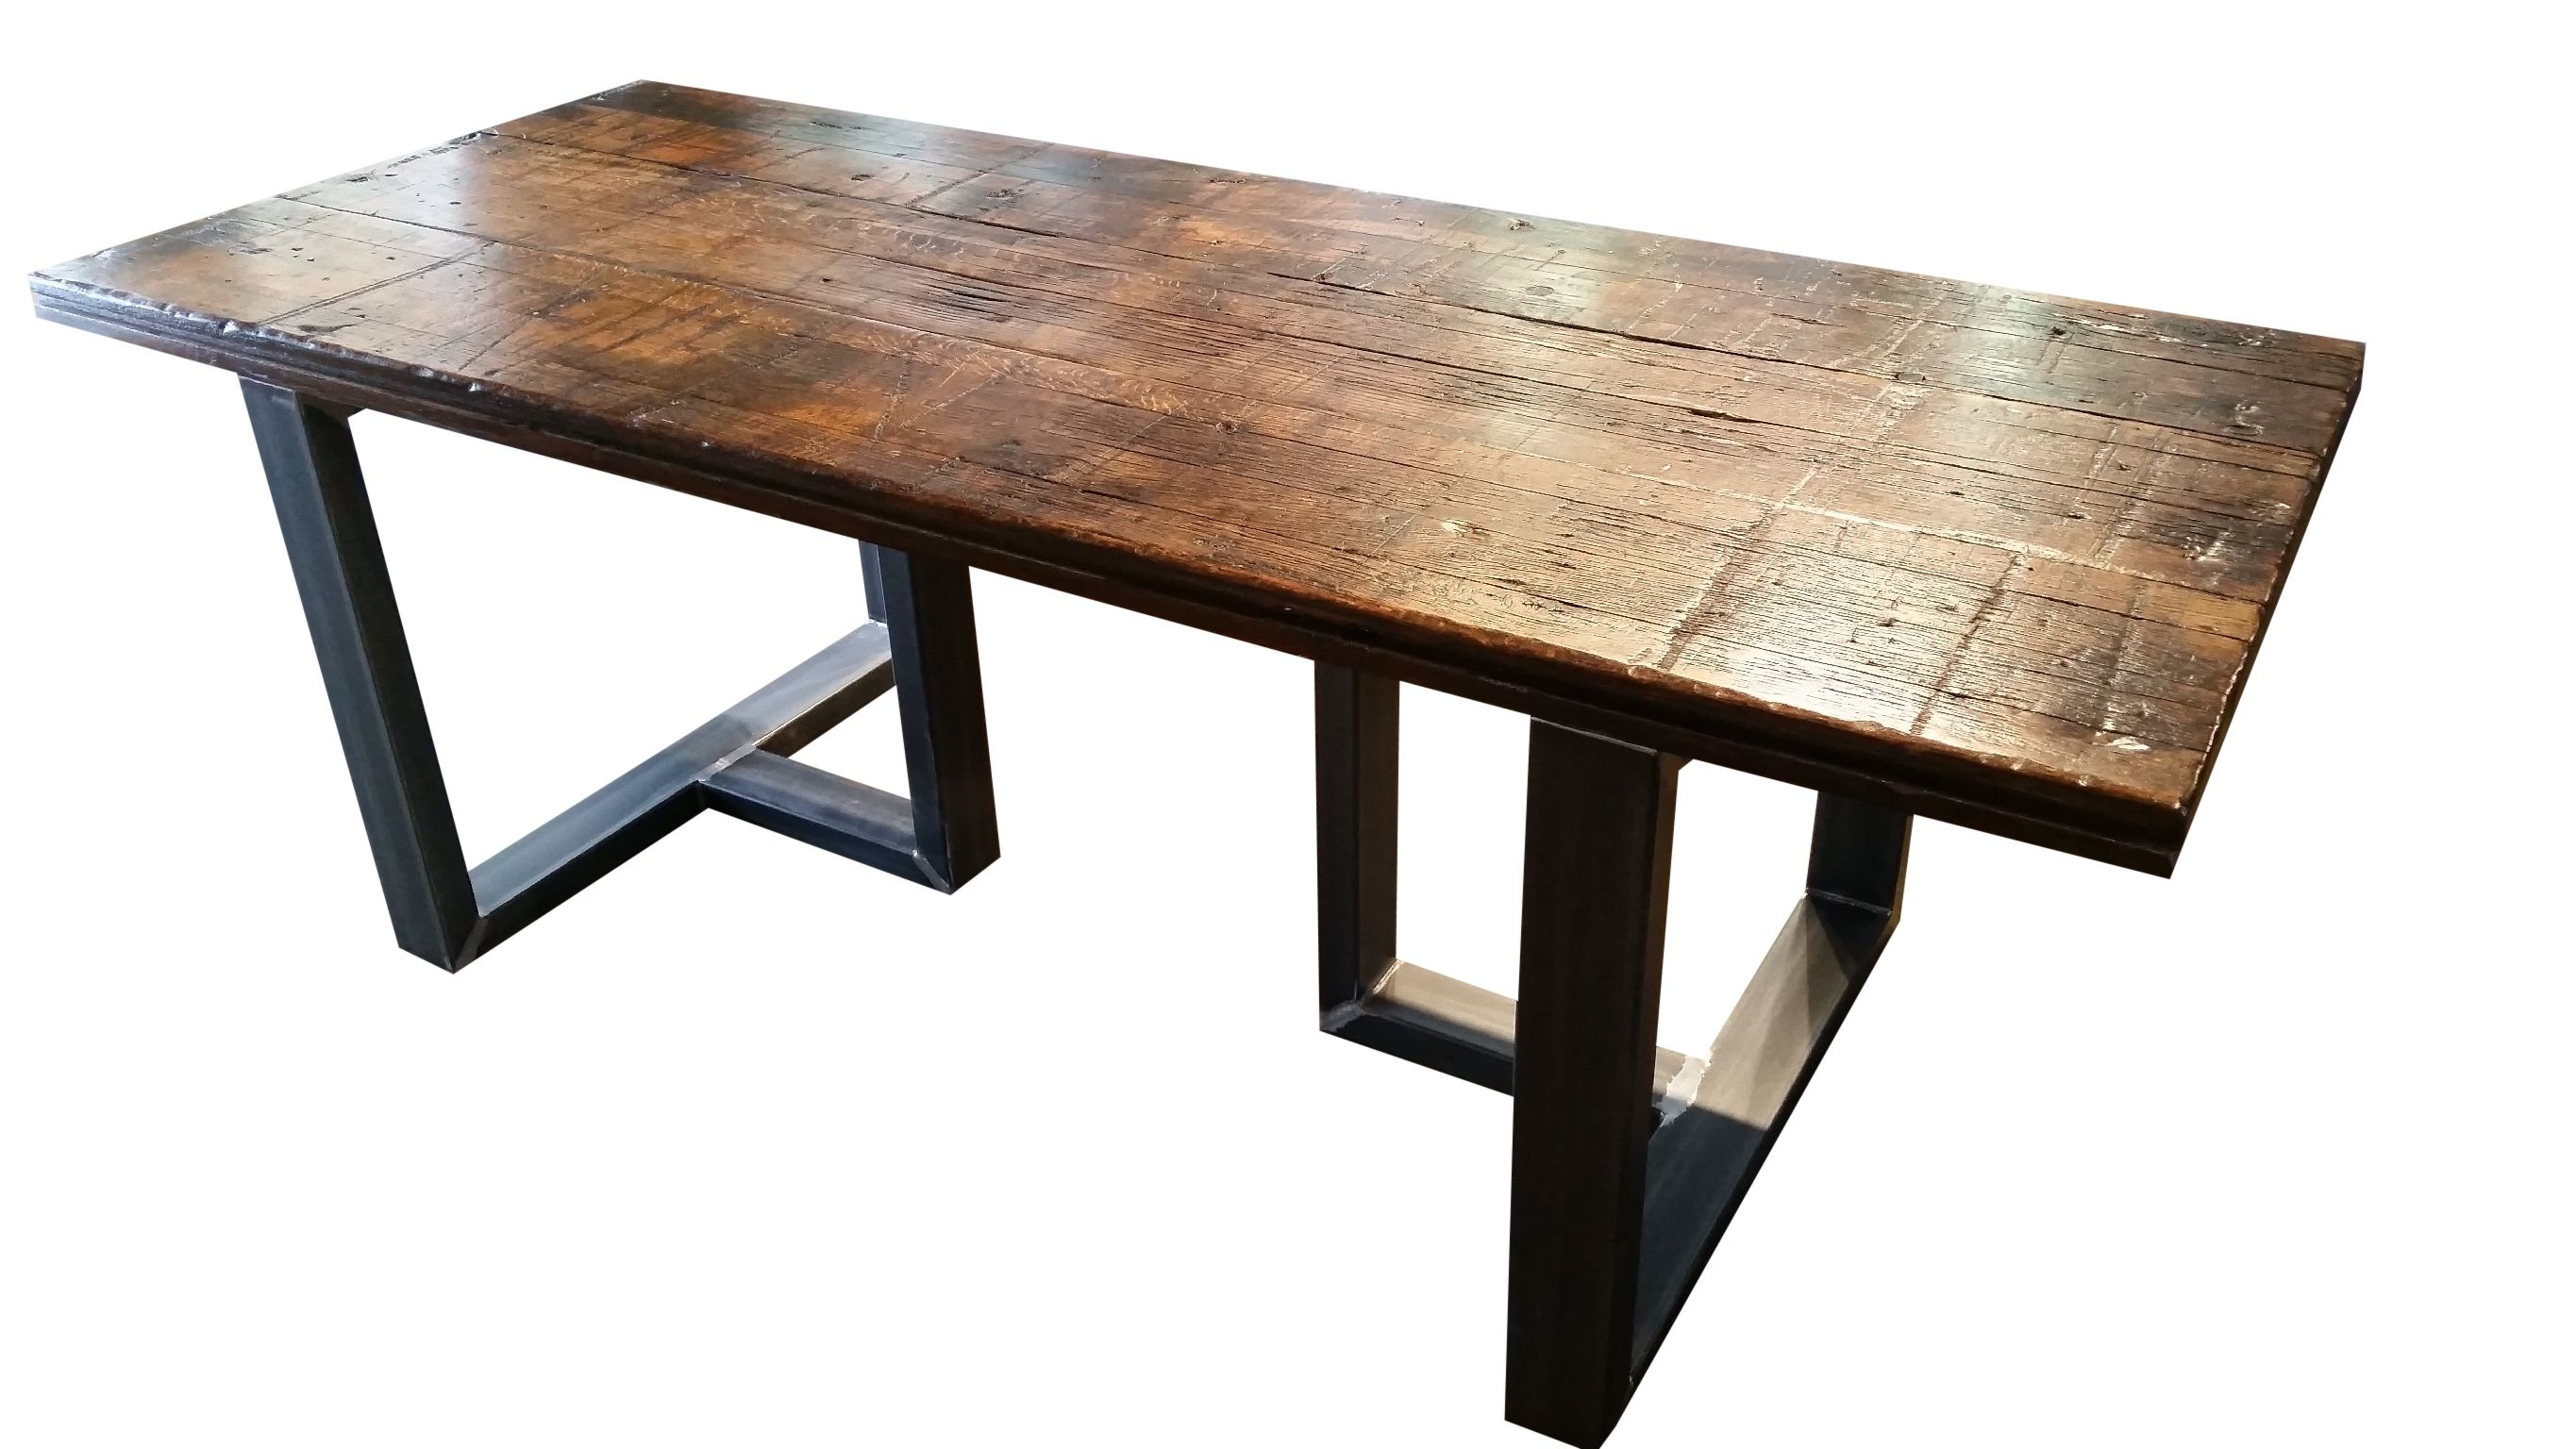 hand made reclaimed wood dining table by urban ironcraft. Black Bedroom Furniture Sets. Home Design Ideas